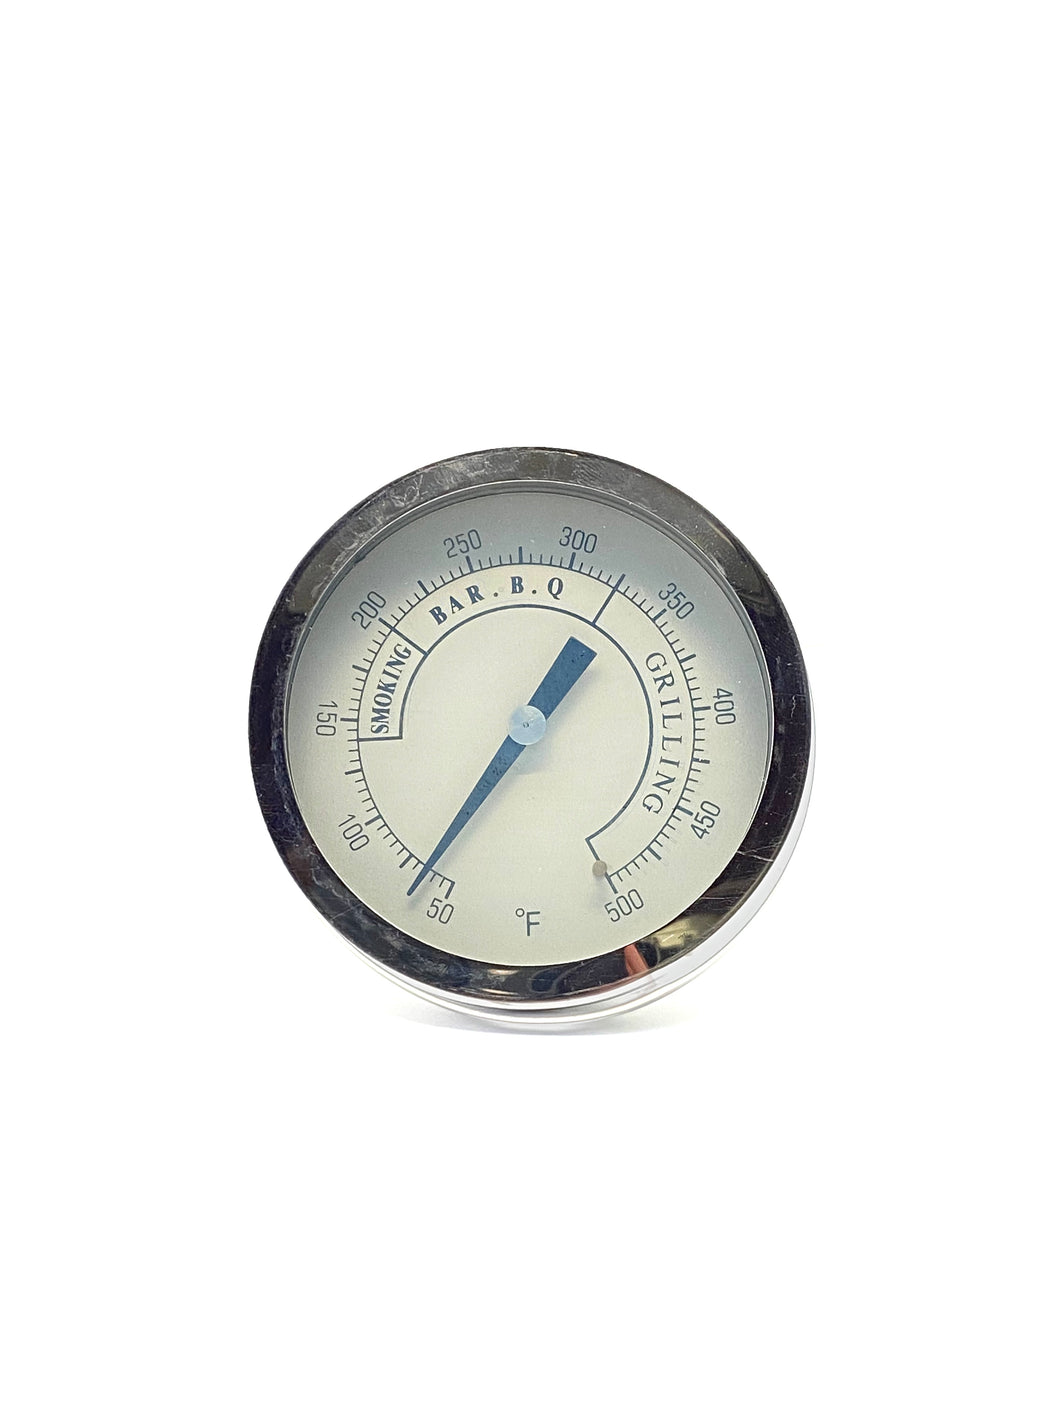 BBQ Thermometer (Replacement Part)